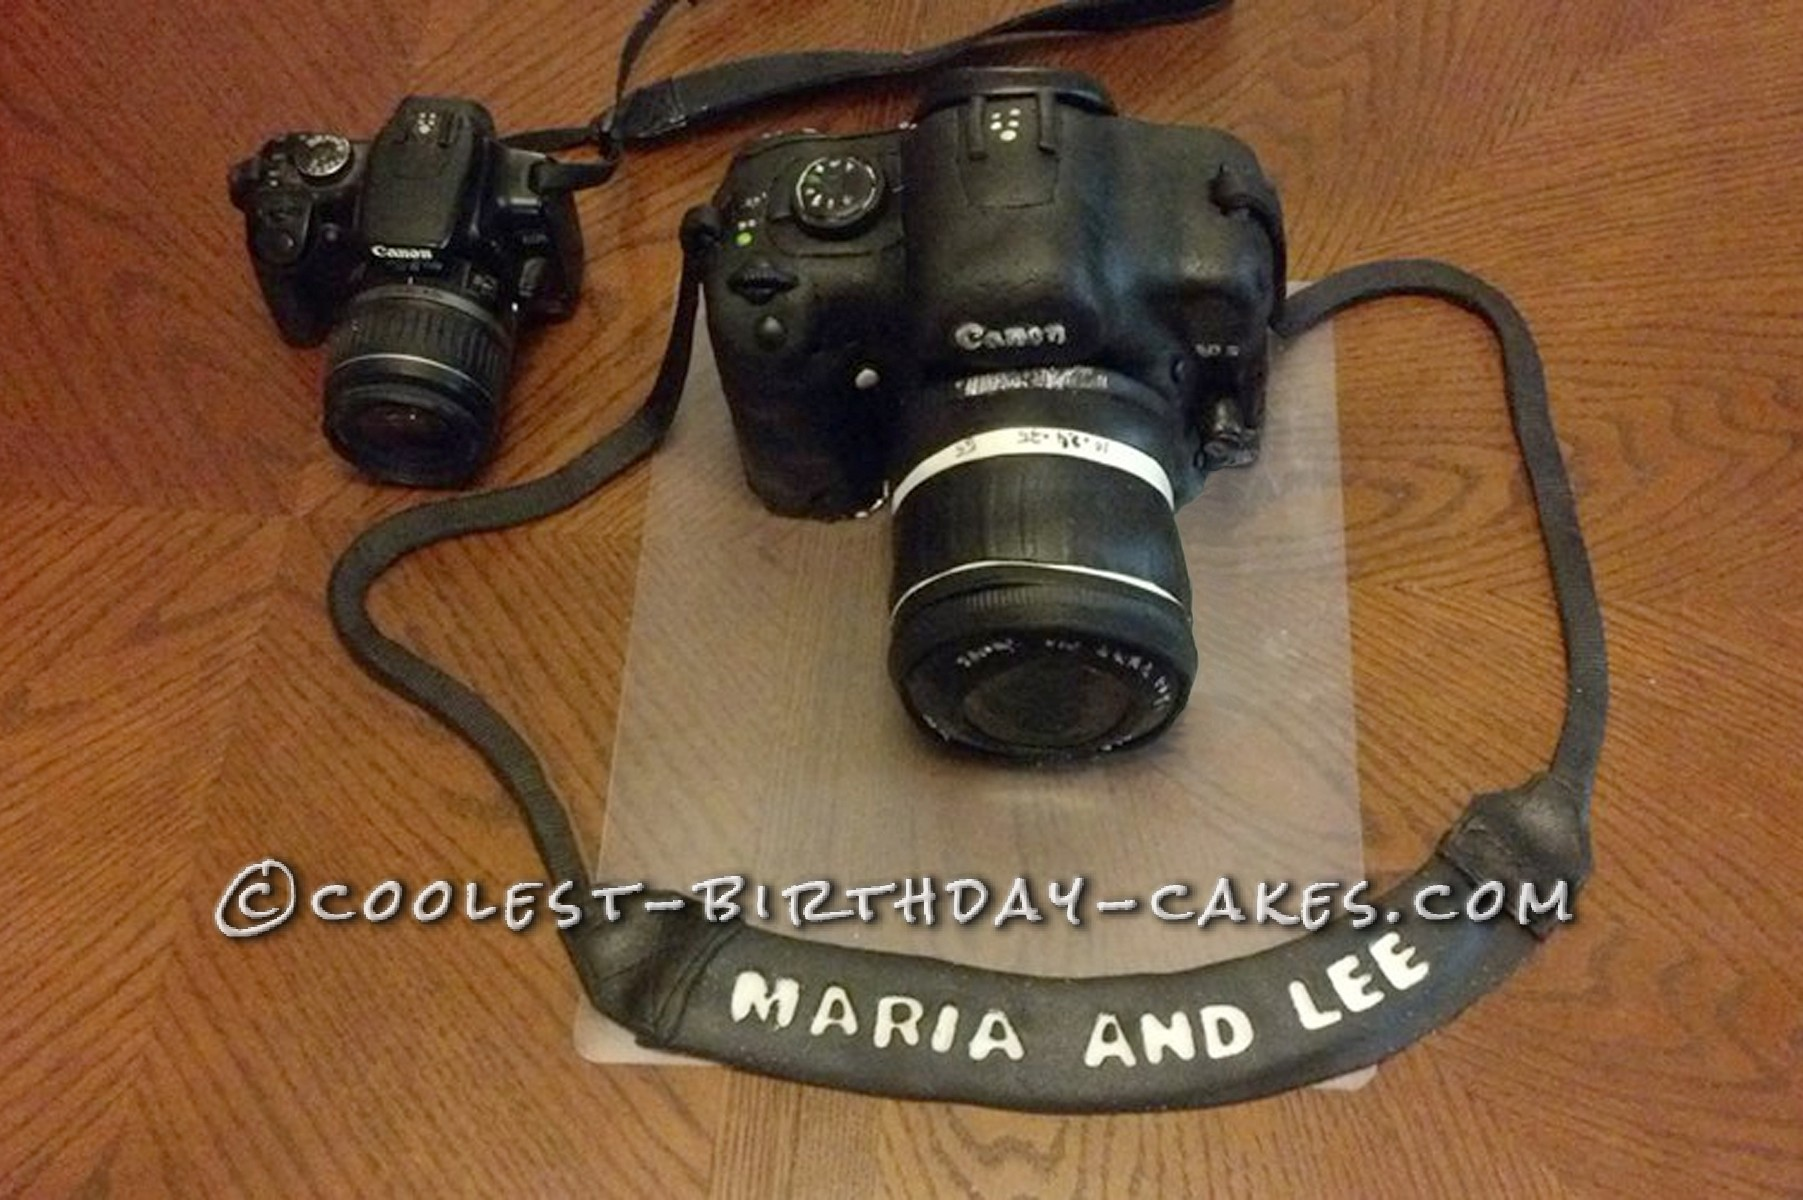 Camera Cake in comparision with real camera